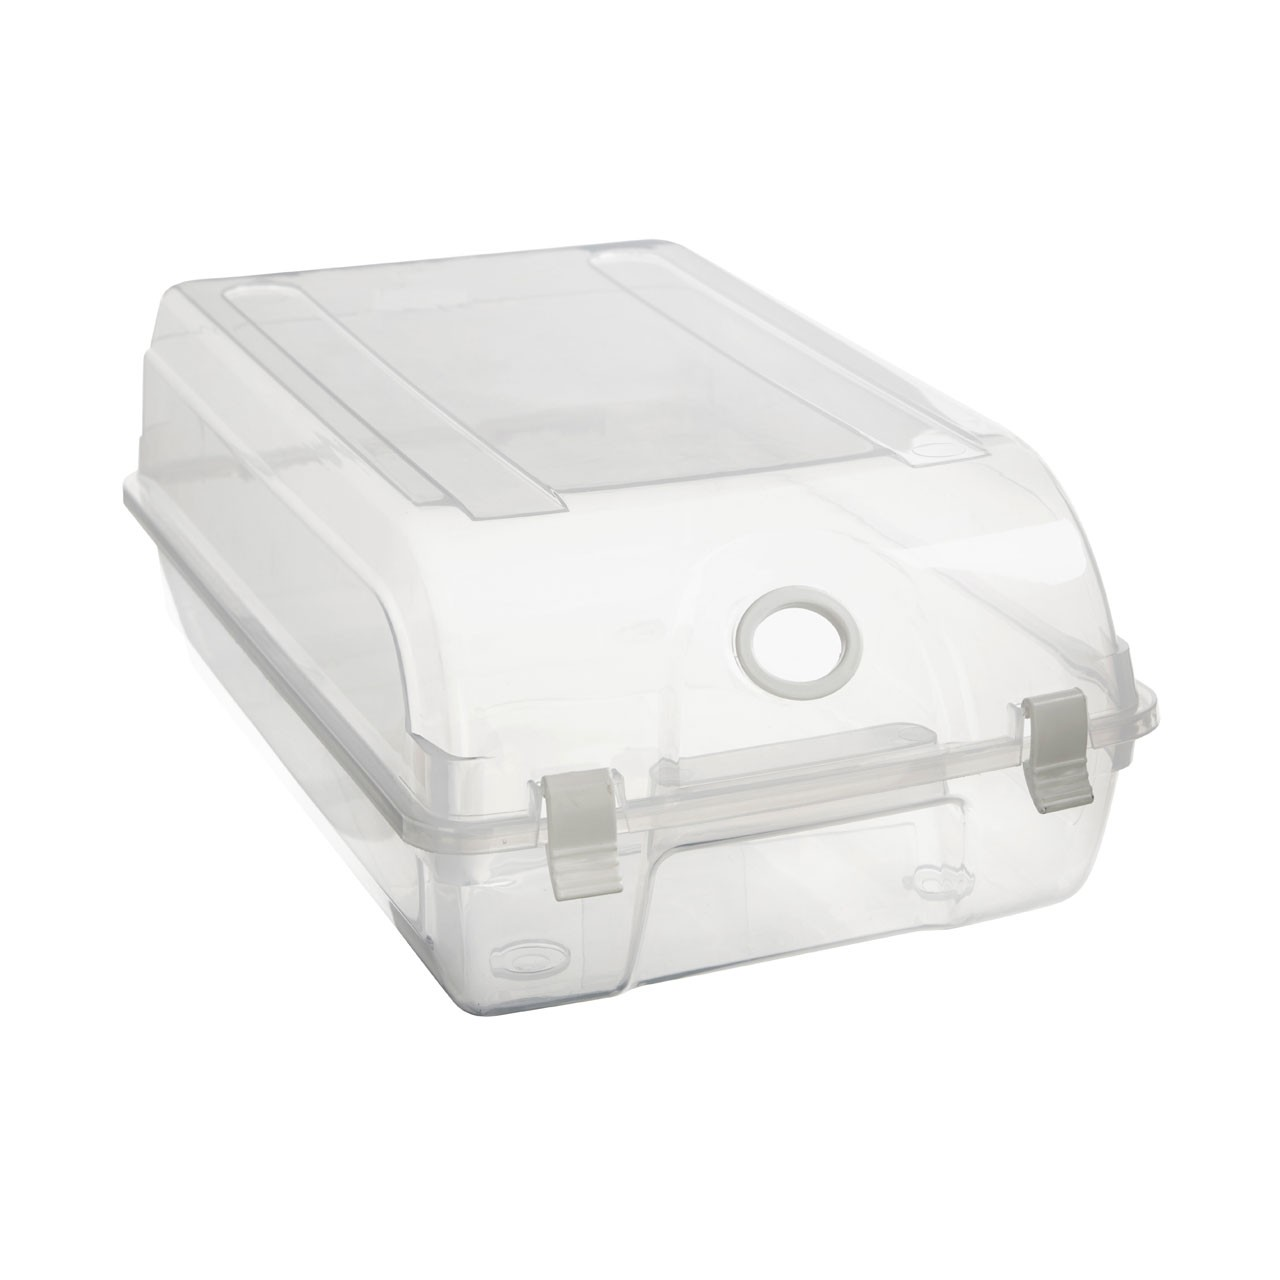 Prime Furnishing Mens Shoe Box - Clear